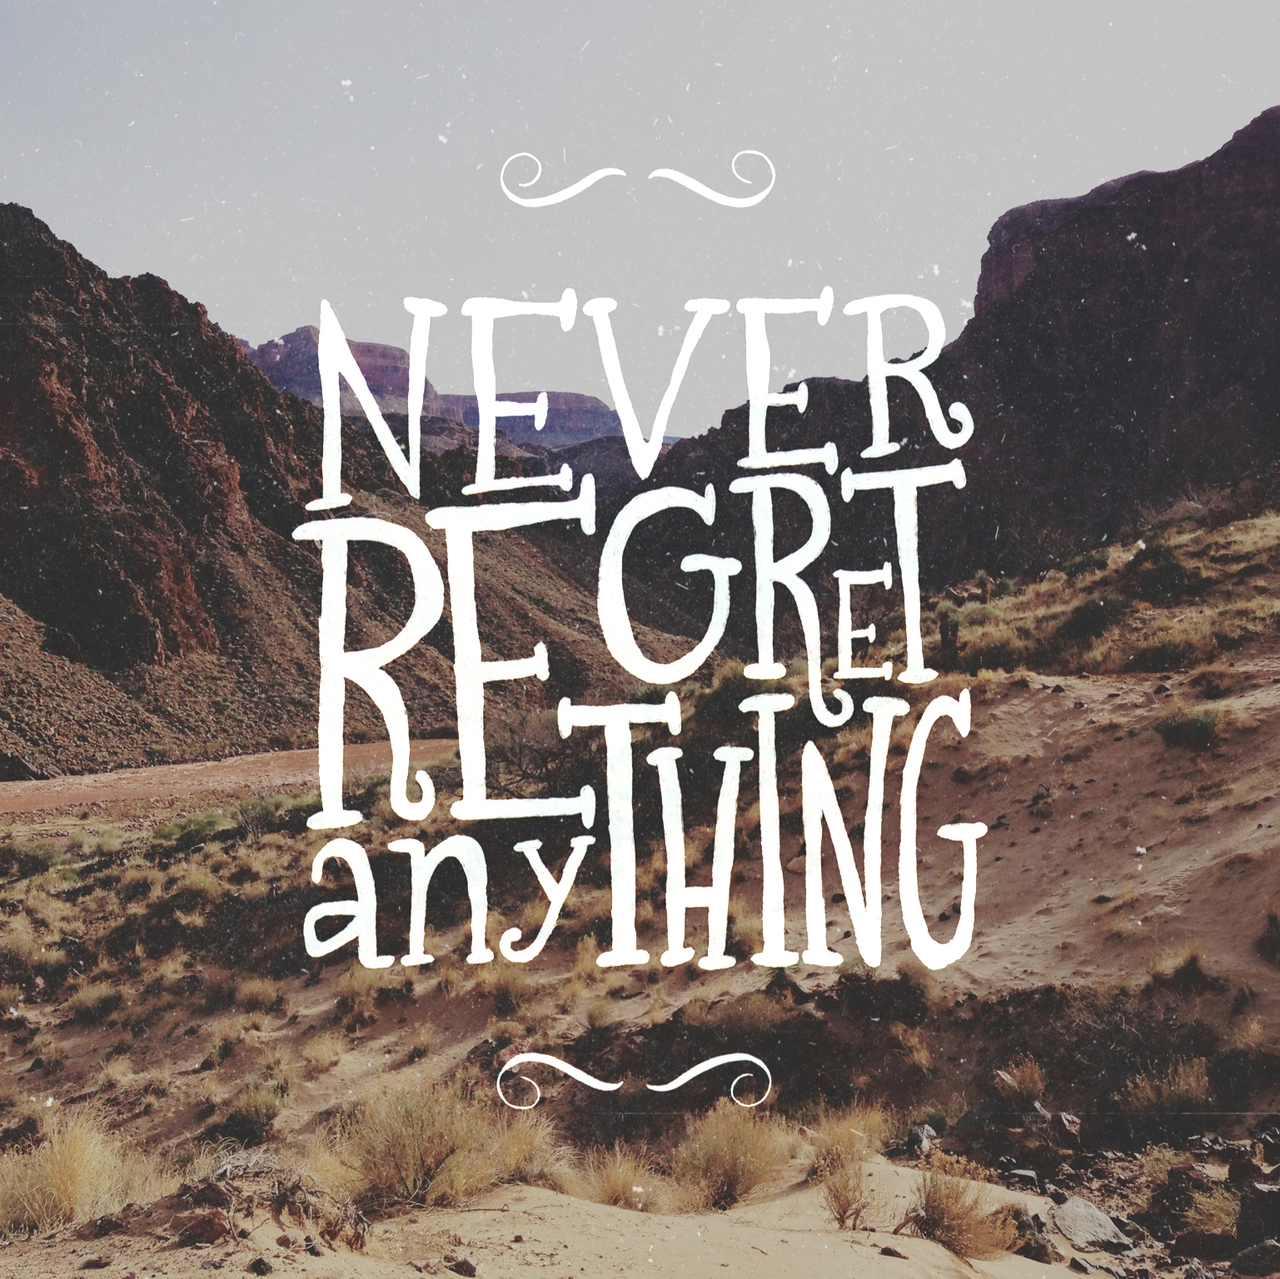 tumblr mmyp6come31qkxrtro1 12801 20 Inspiring and Beautiful Typographic Quotes